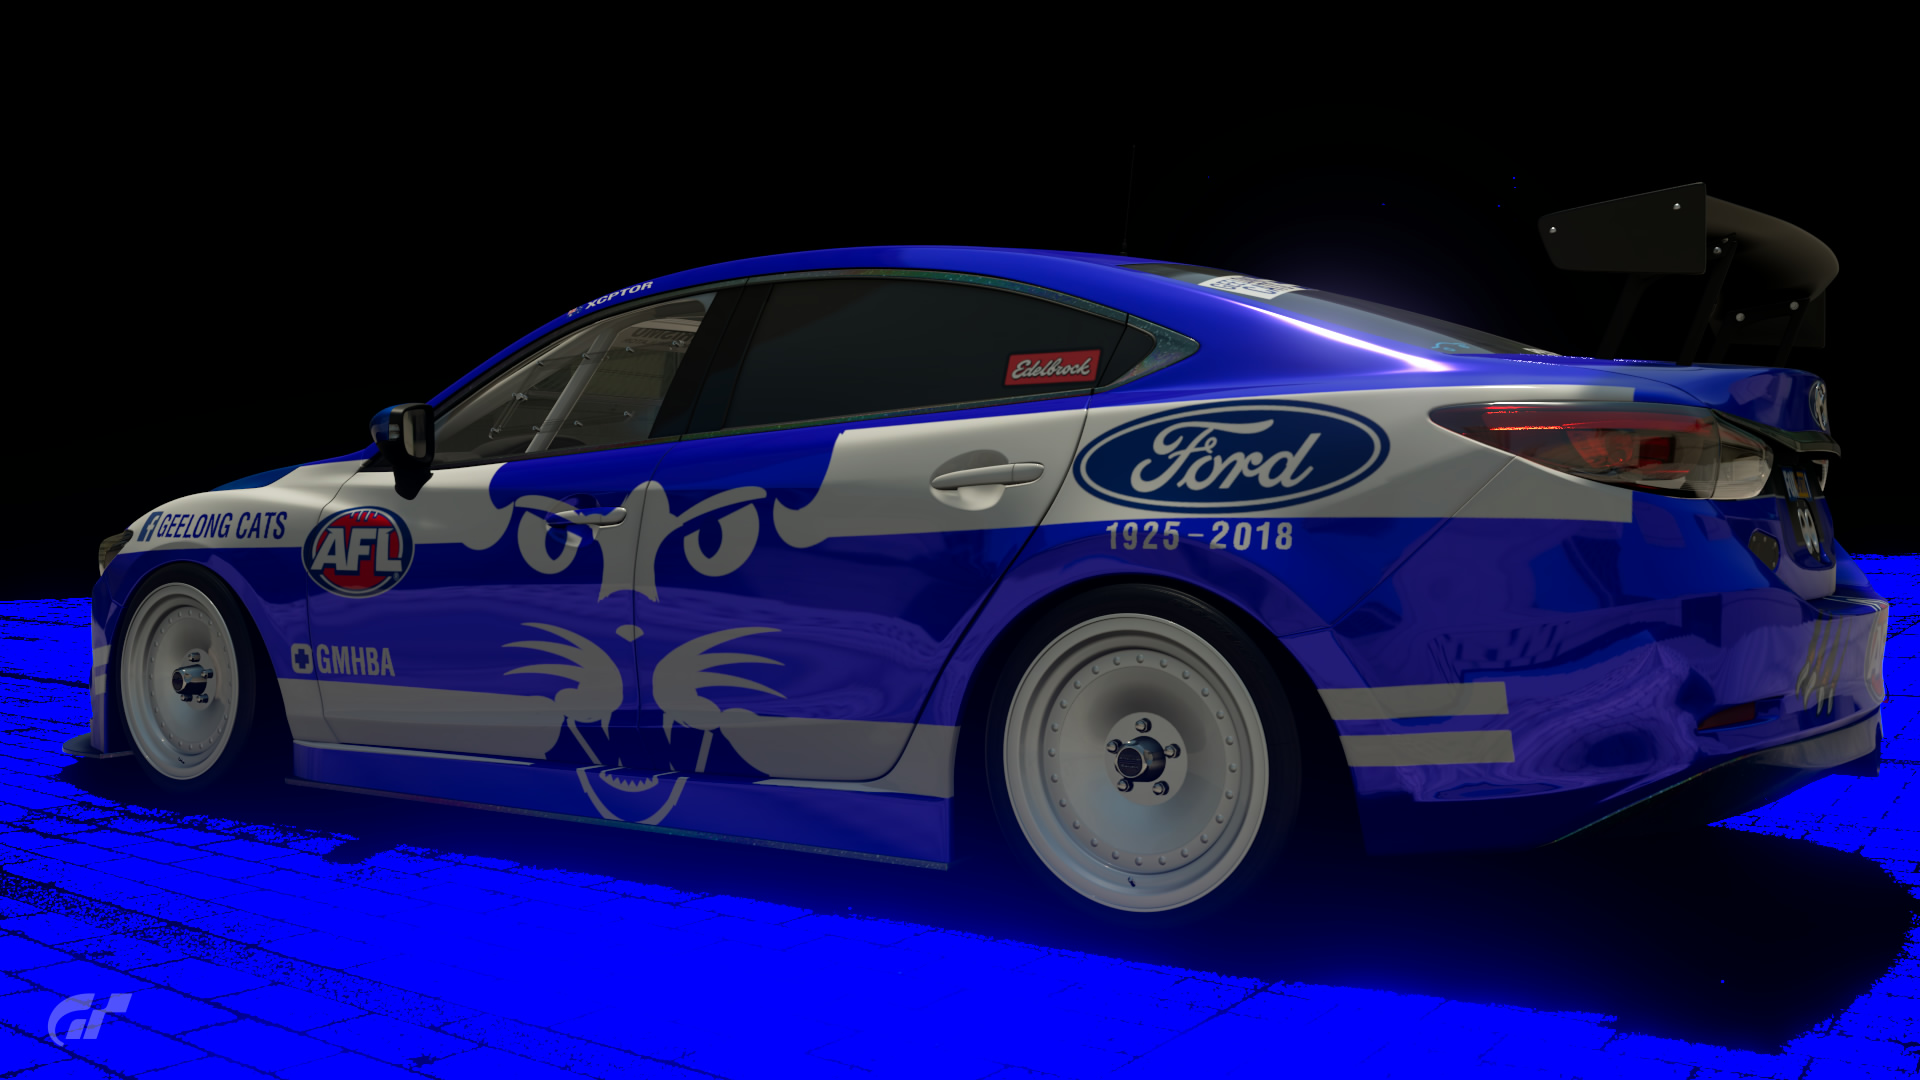 Geelong Cats Scapes Photos By Xcptor Community Gran Turismo Sport